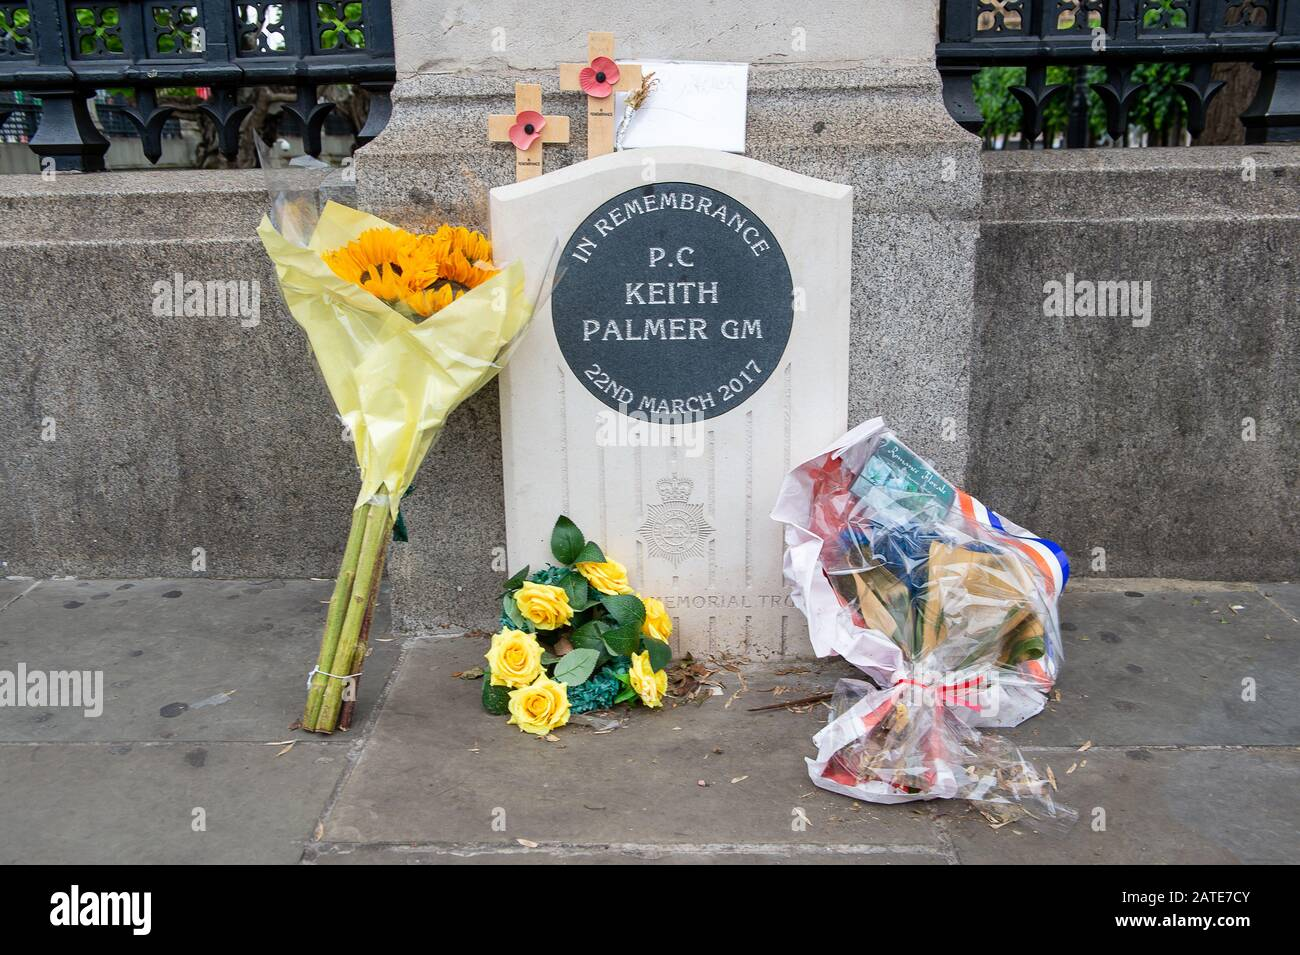 "Westminster, London, UK. 26th June, 2019. Flowers are left in memory of PC Keith Palmer GM who was stabbed and died from his injuries during the Westminster Attack on 22nd March 2017 whilst at work at the House of Commons. Following his death he was posthumously awarded the George Medal which is the second highest award for gallantry ""not in the face of the enemy"". Credit: Maureen McLean/Alamy Stock Photo"